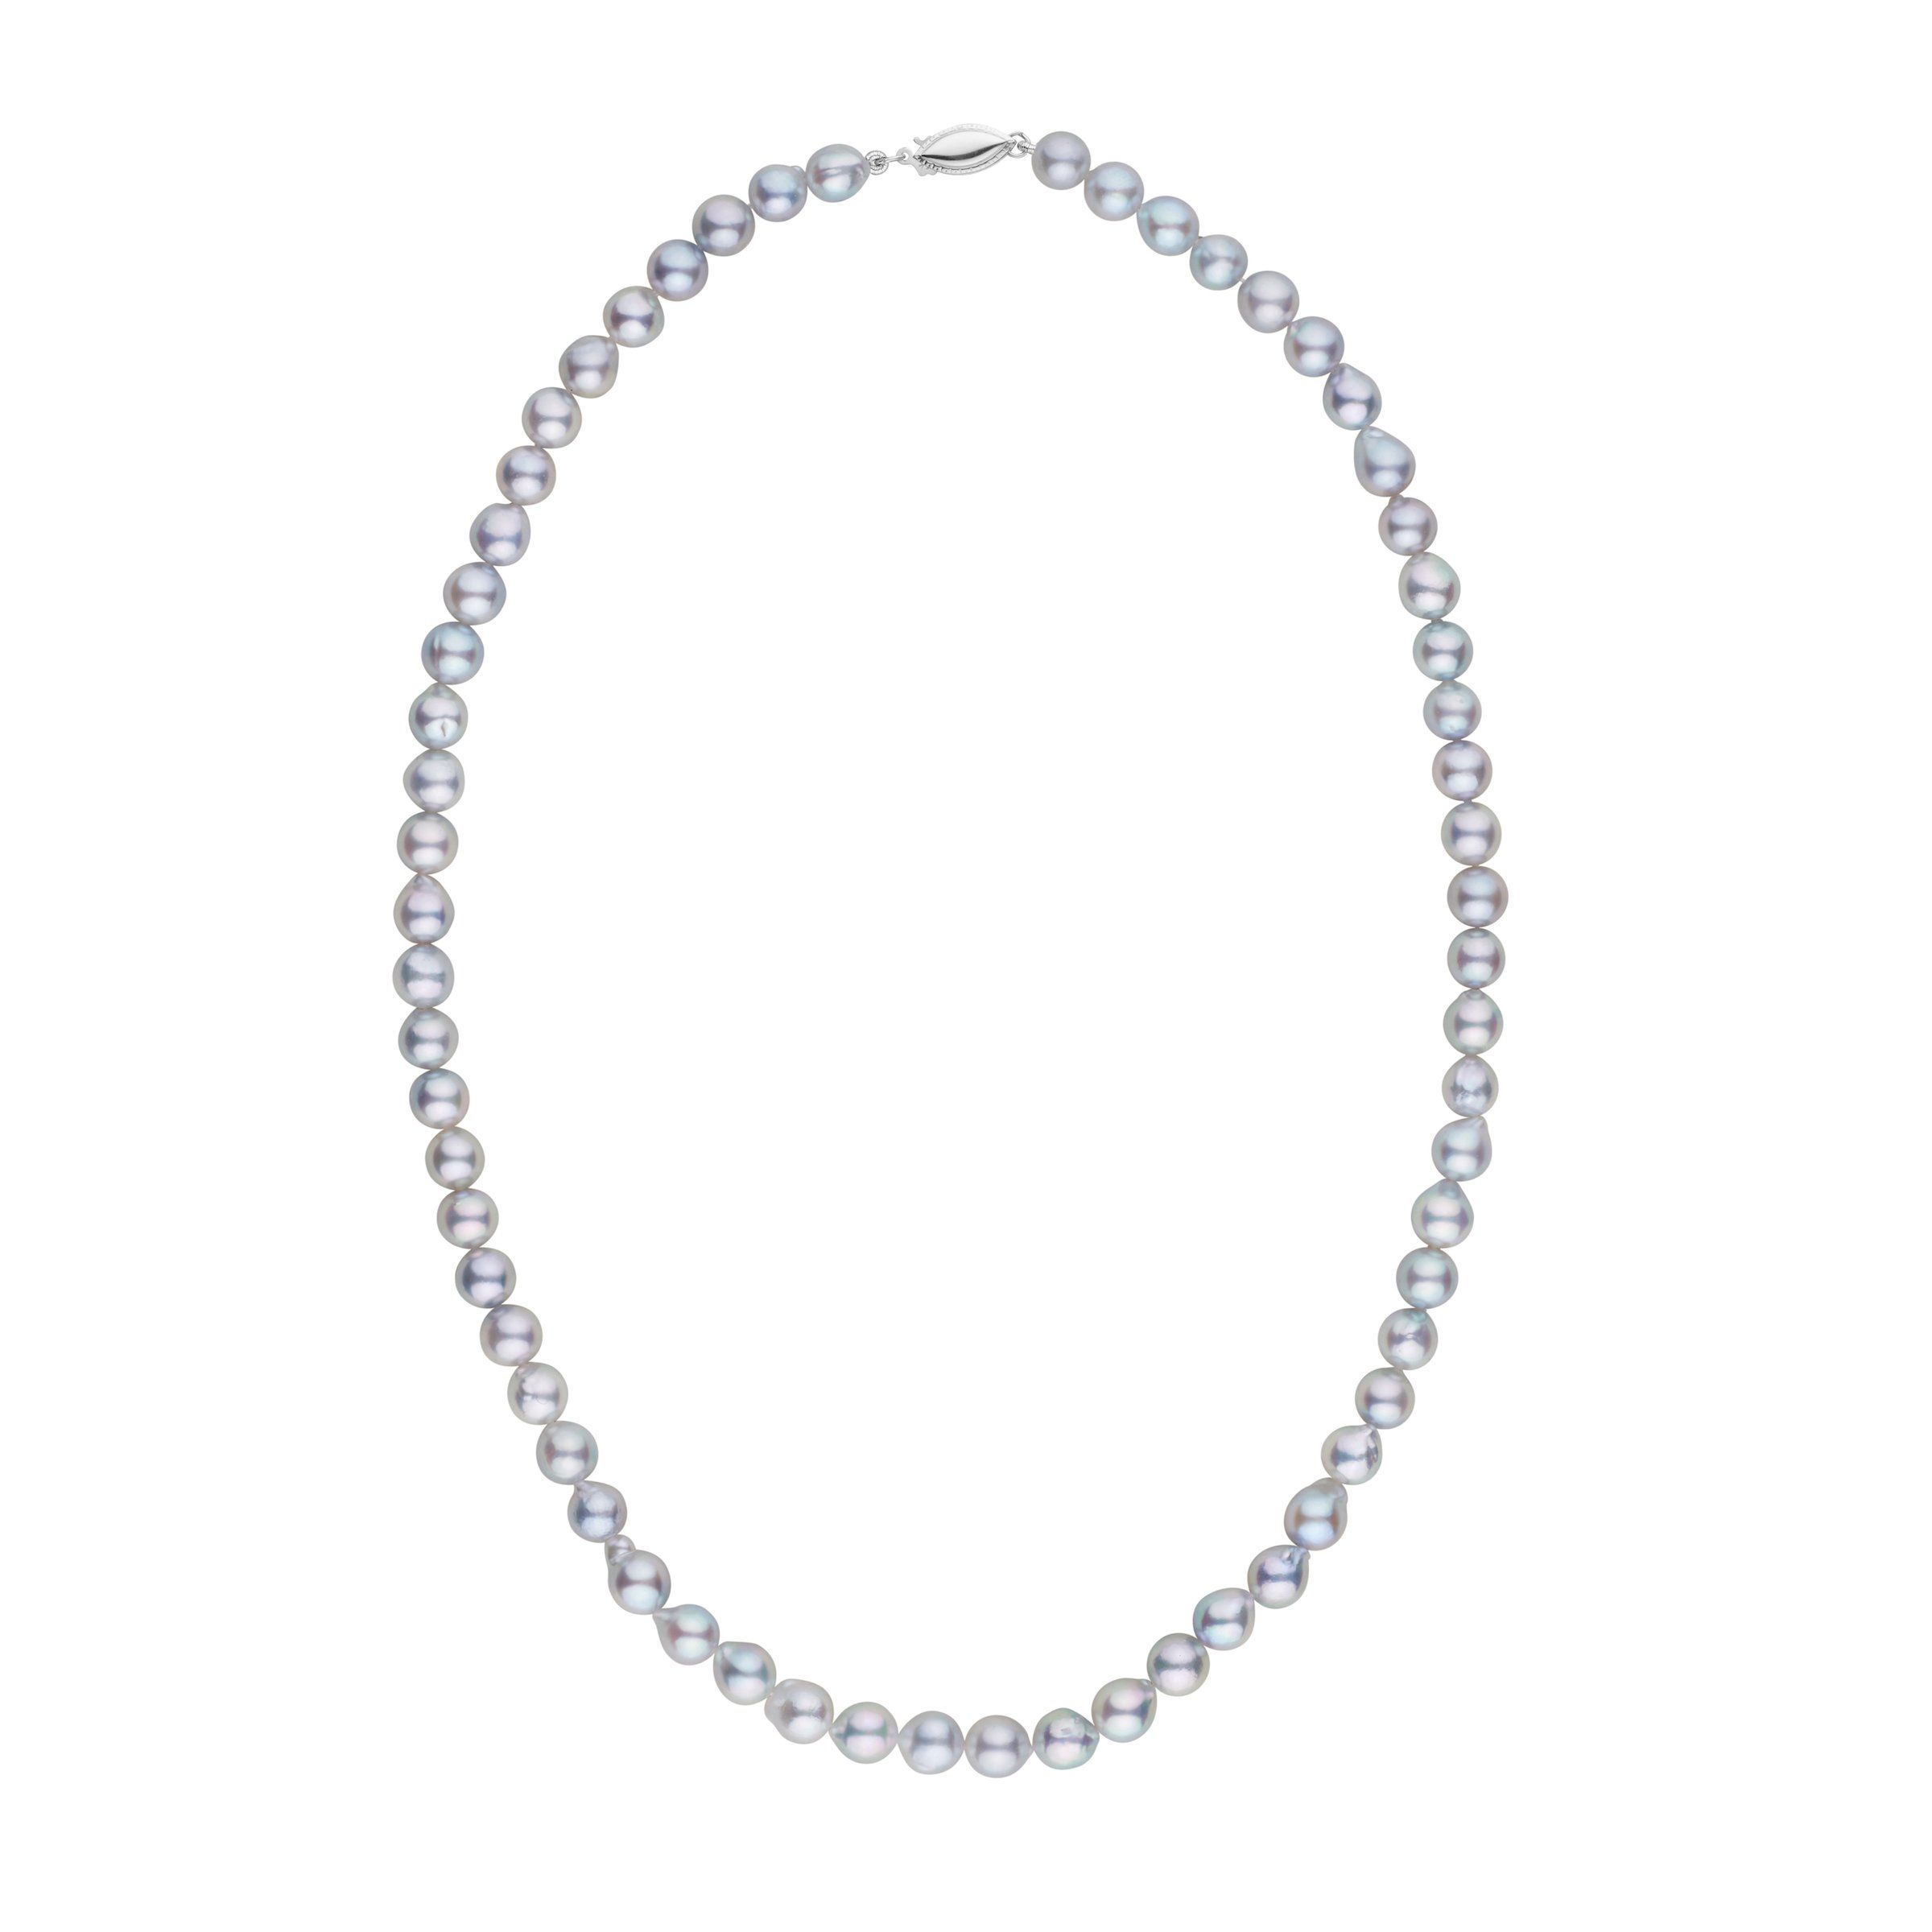 6.0-6.5 mm 18 Inch Silver-Blue Akoya Baroque Pearl Necklace